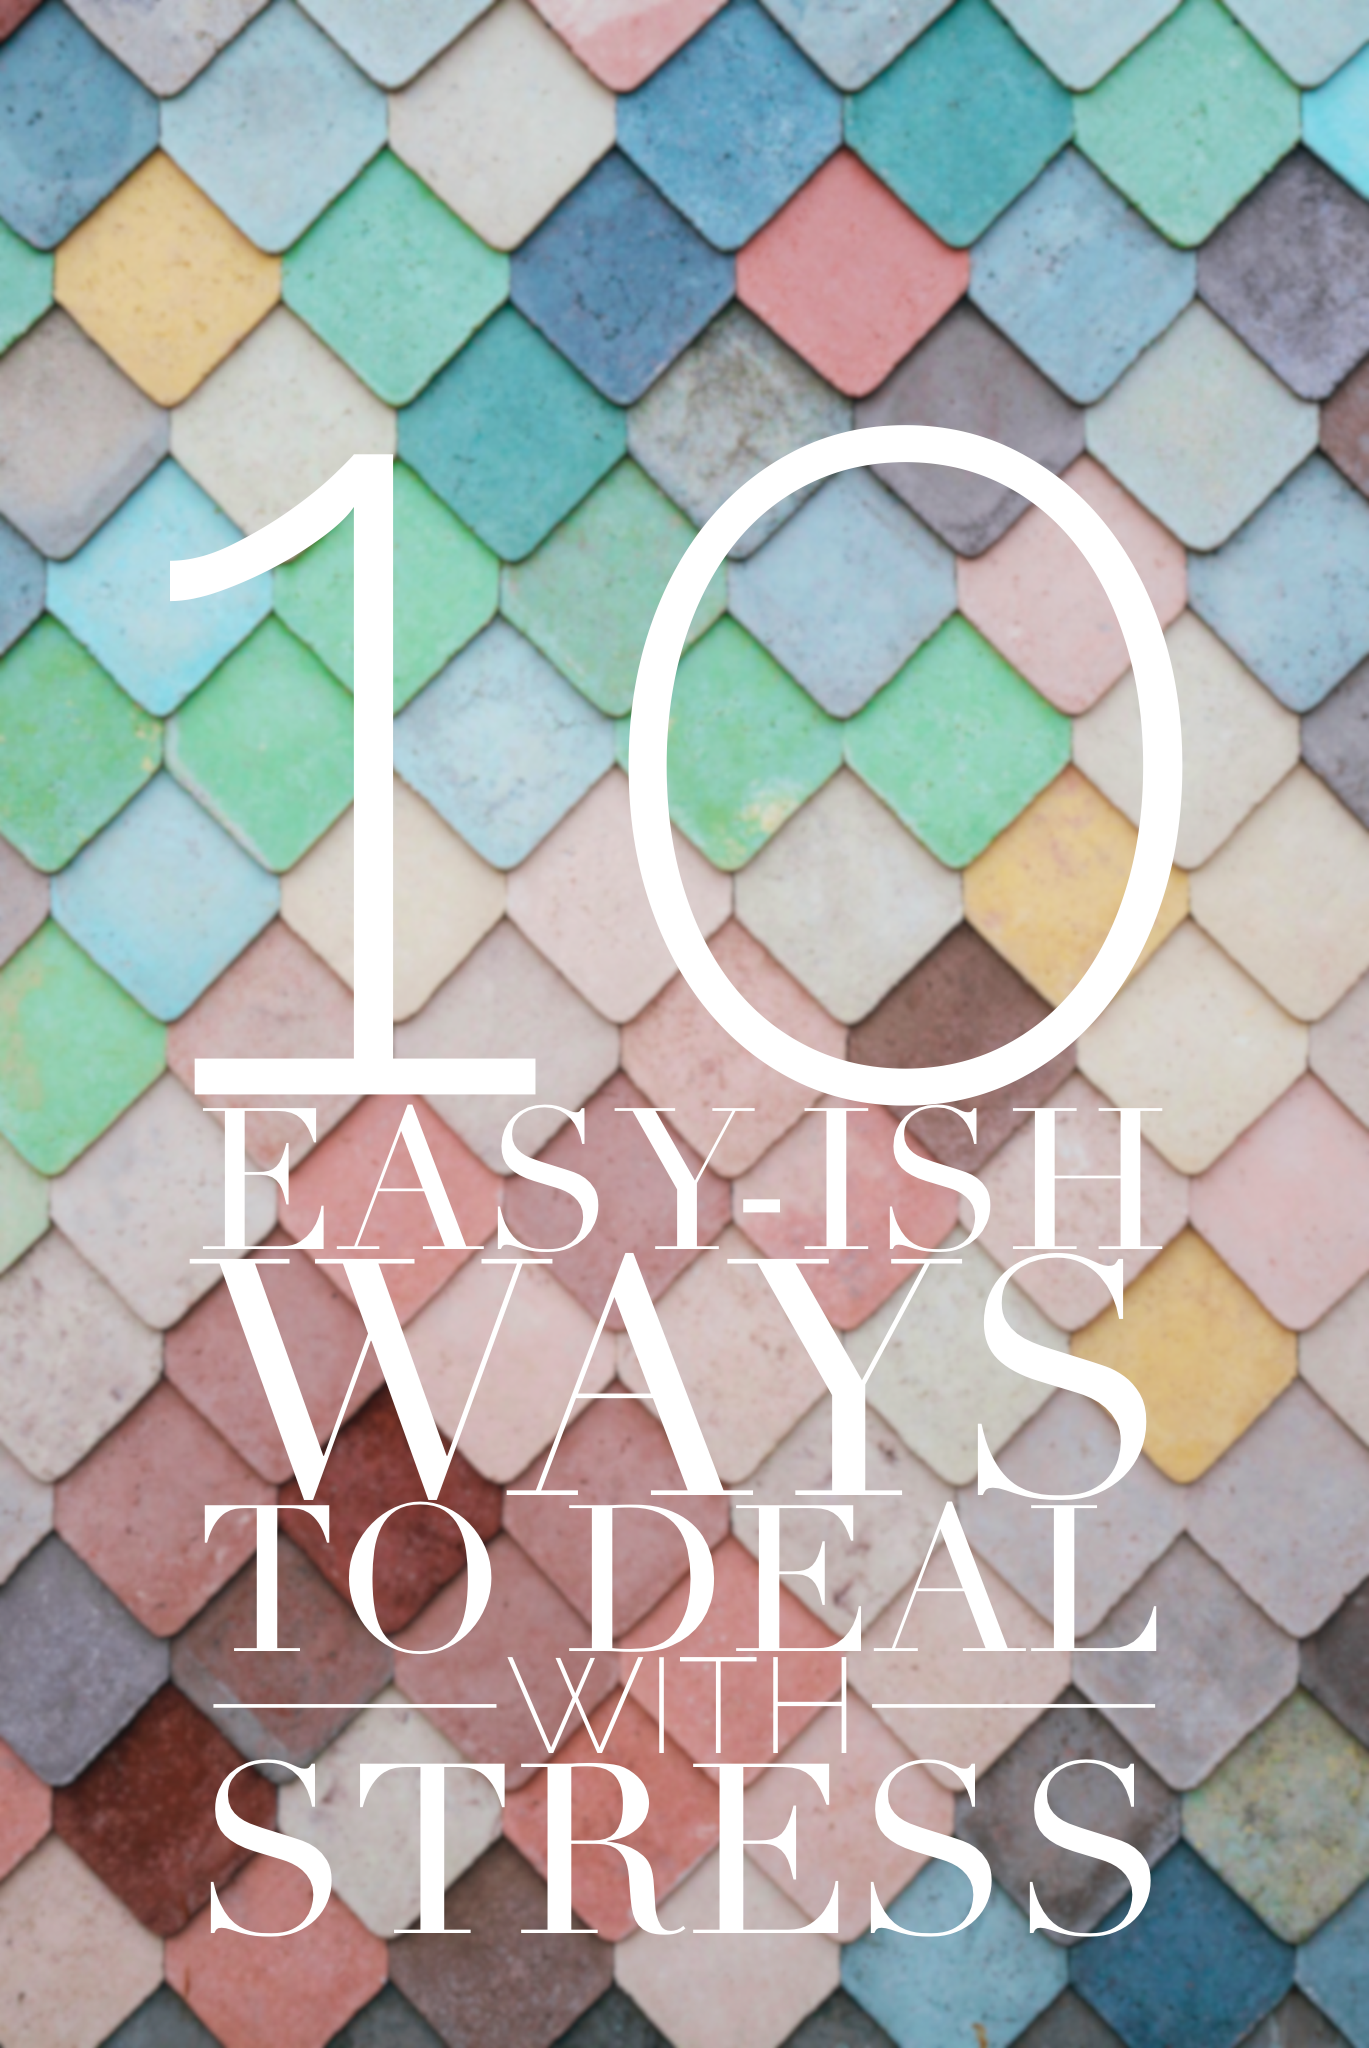 10 Easy-ish Ways to Deal with Stress - healthy ways to deal with stress in your life.